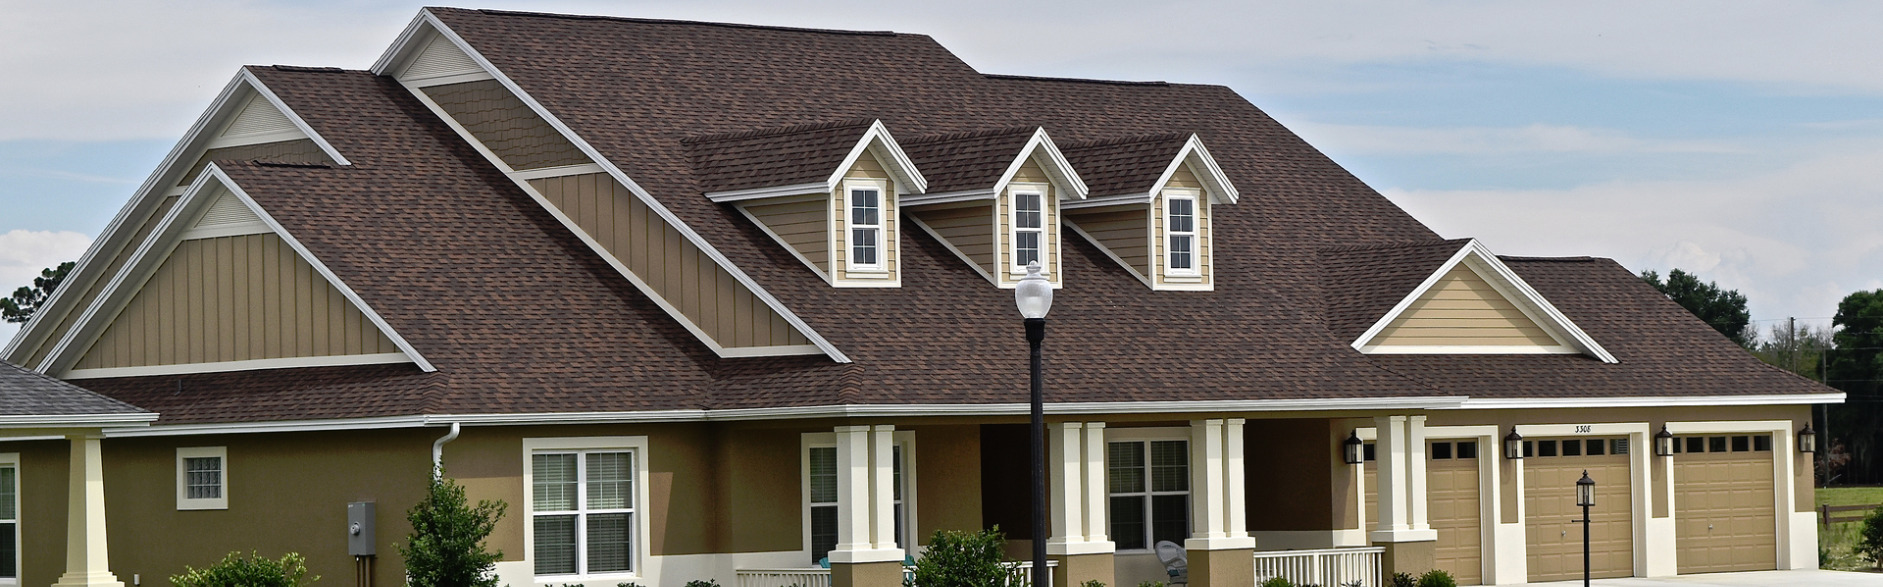 Knoxville Roofing Contractor 865 389 4258